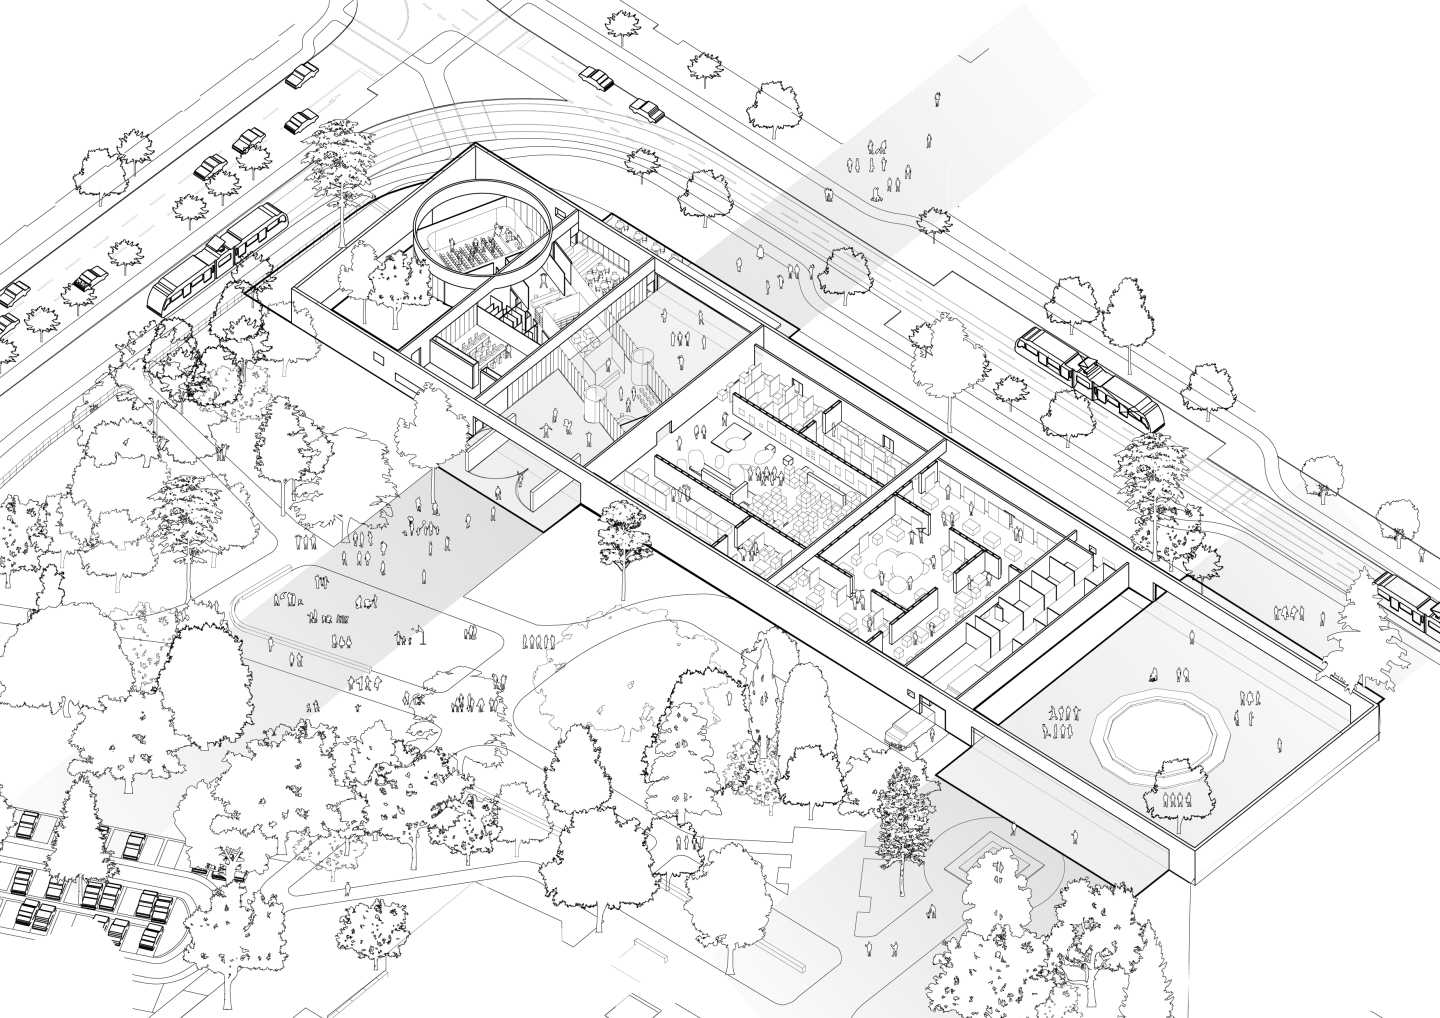 Architectual drawing black and white. Architects for urbanity bauhaus